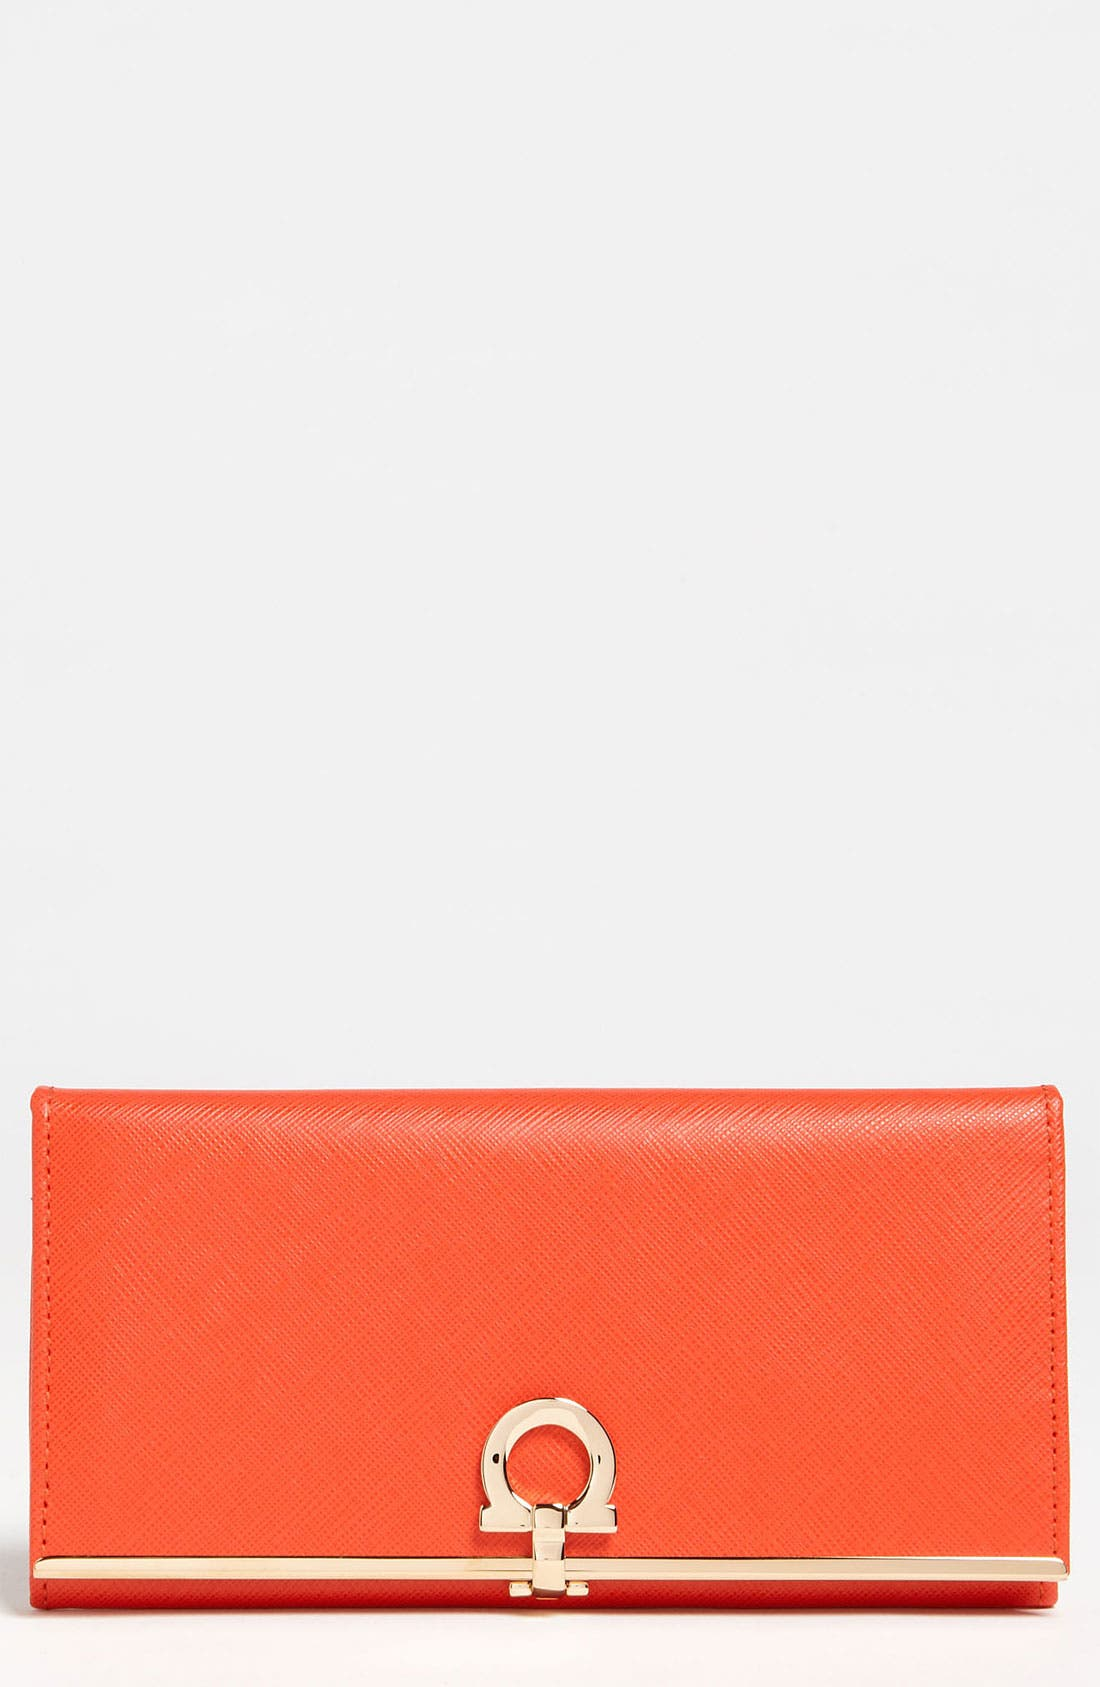 Alternate Image 1 Selected - Salvatore Ferragamo 'Gancini Icona' Saffiano Calfskin Wallet